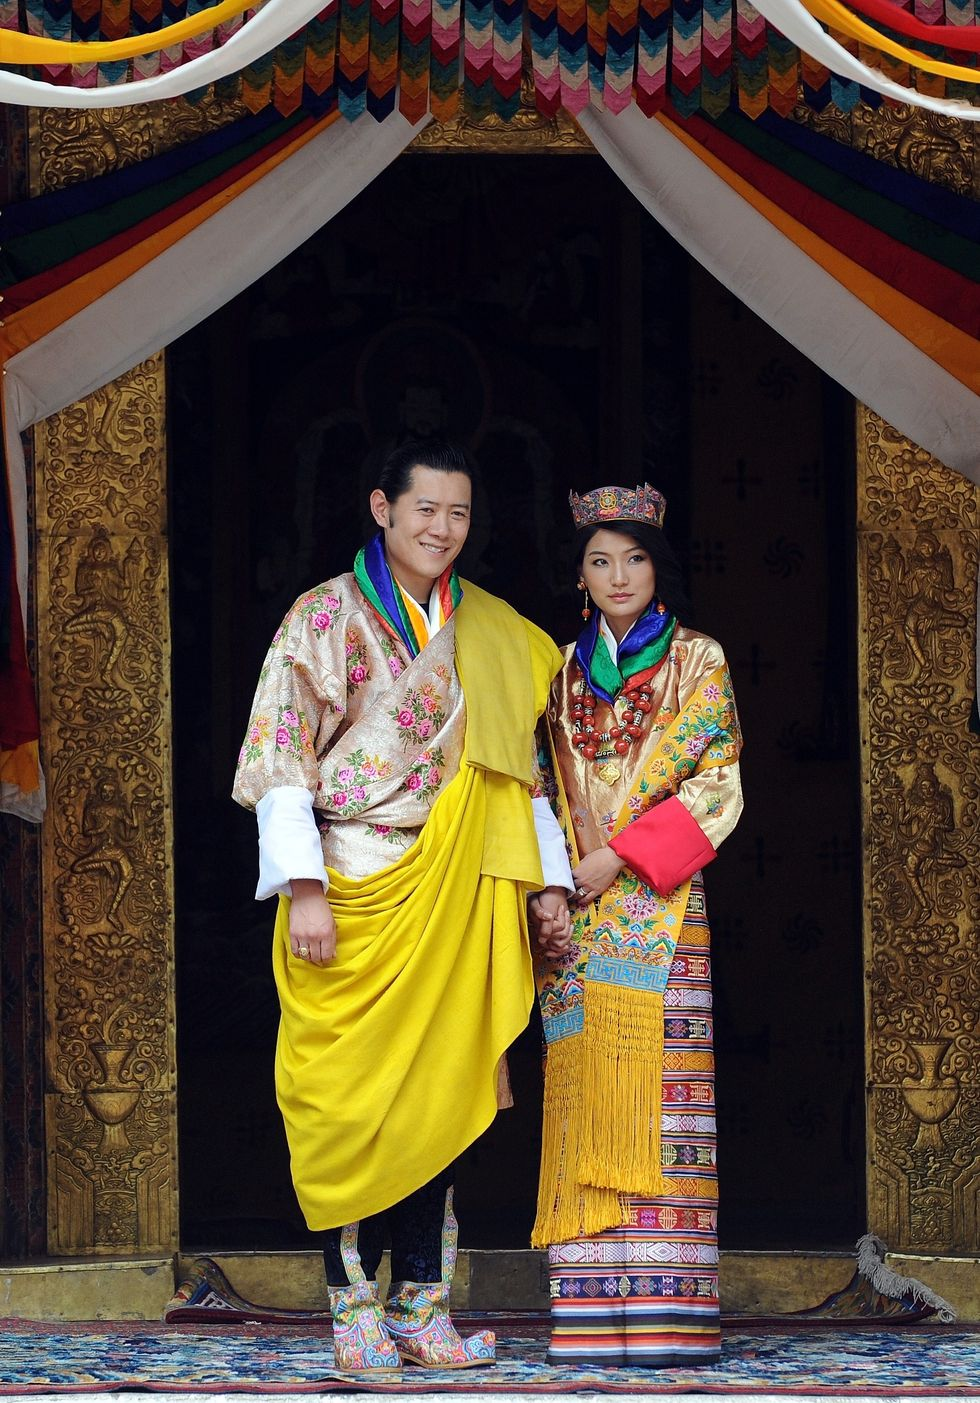 bhutan_royal_family_16.jpg